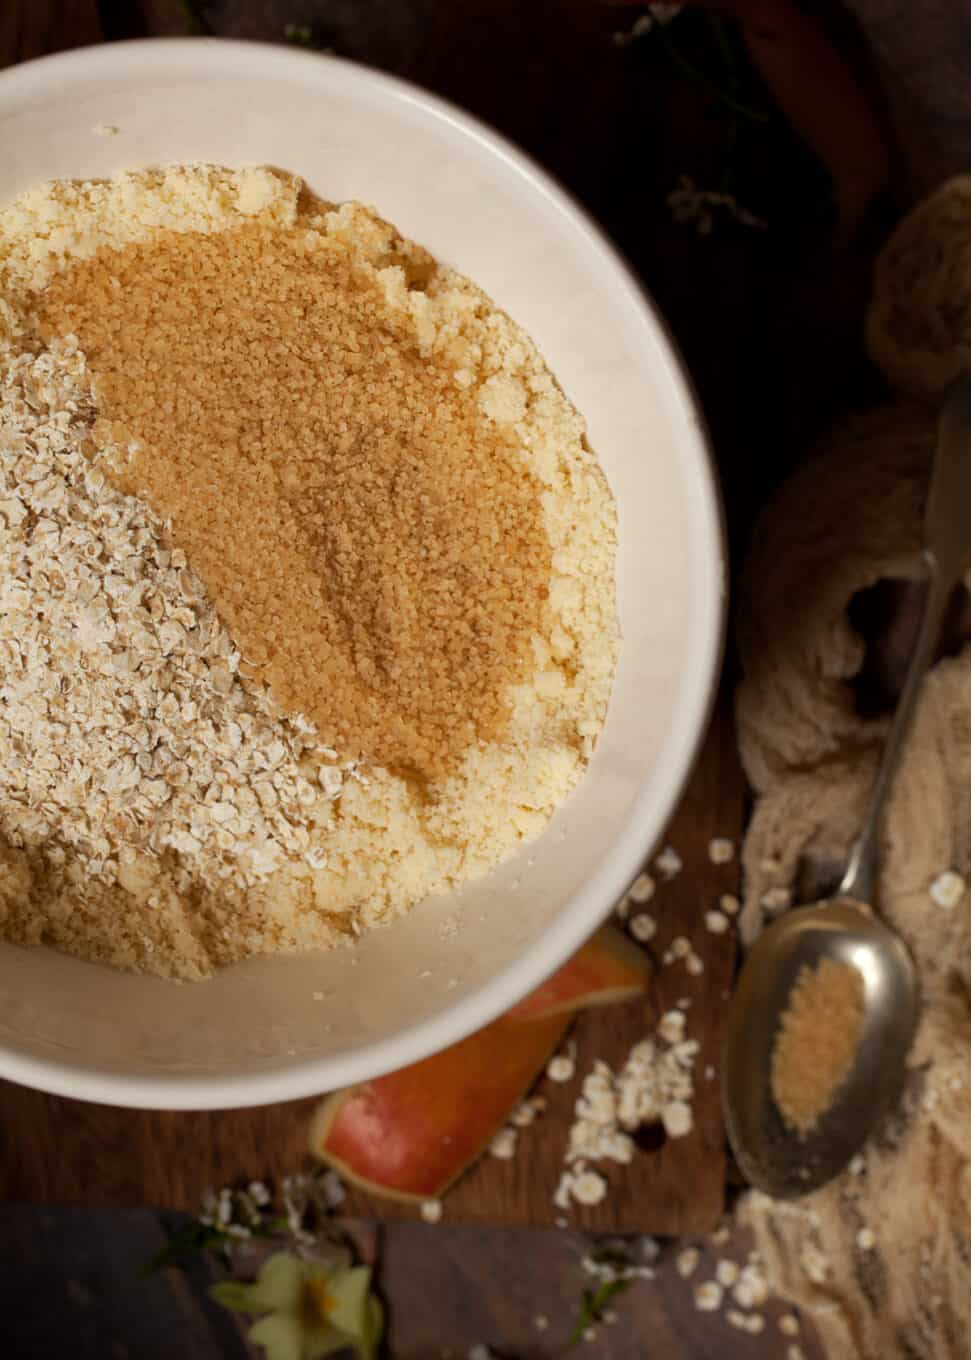 oats and demerara sugar being added to crumble topping in a bowl